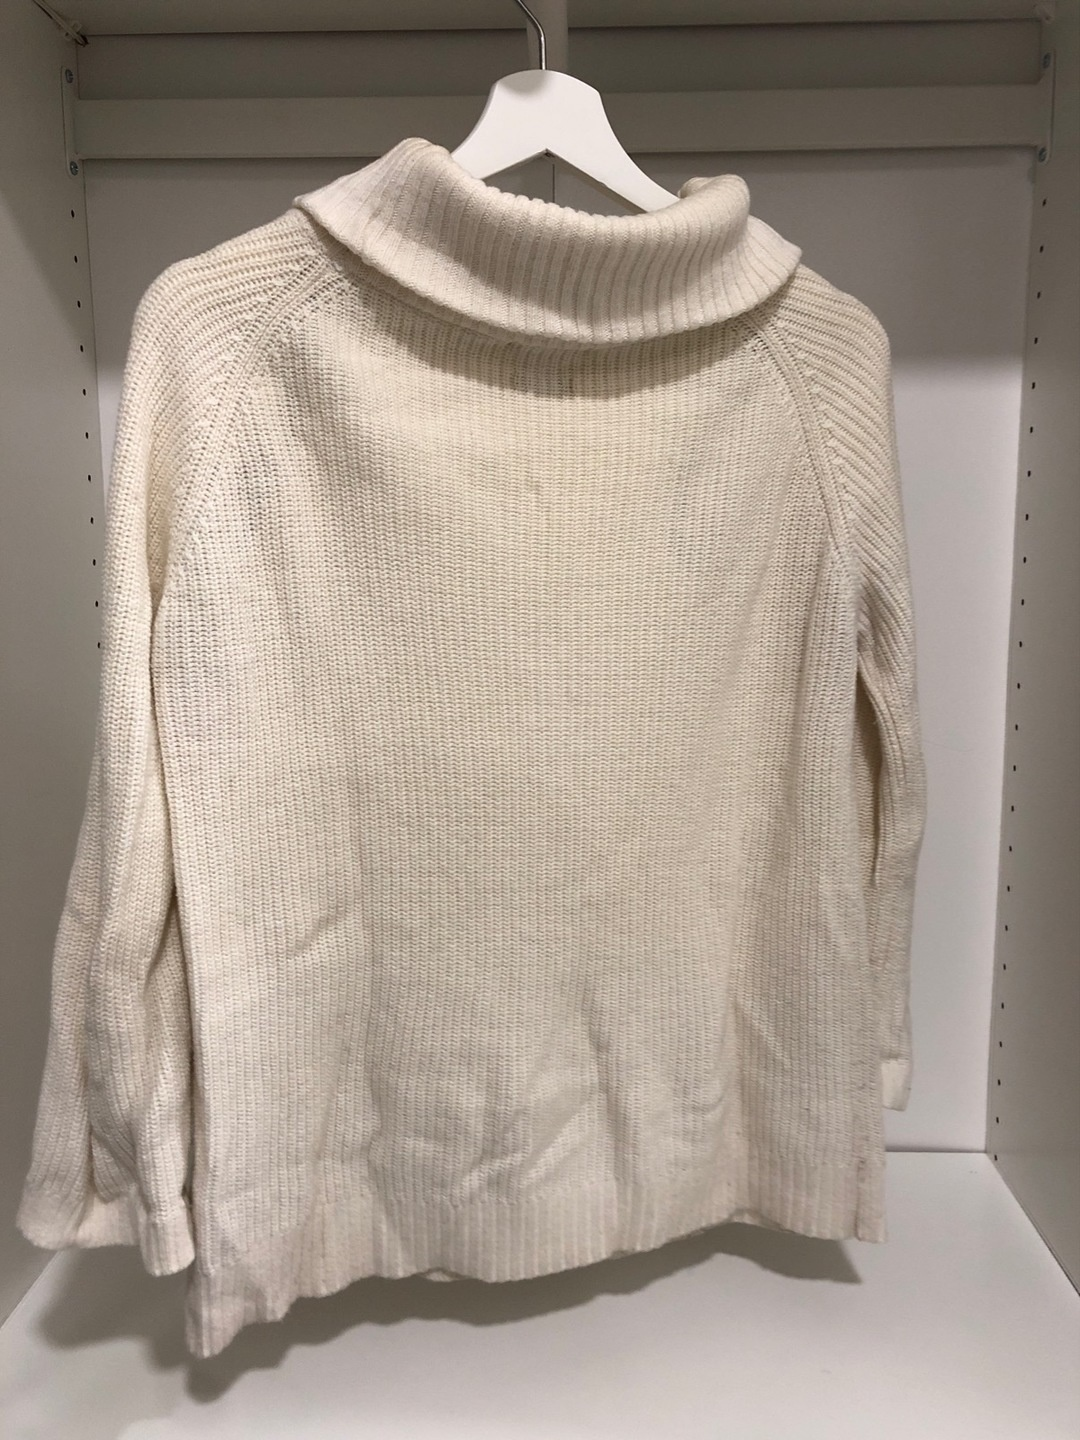 Women's jumpers & cardigans - MASSIMO DUTTI photo 2